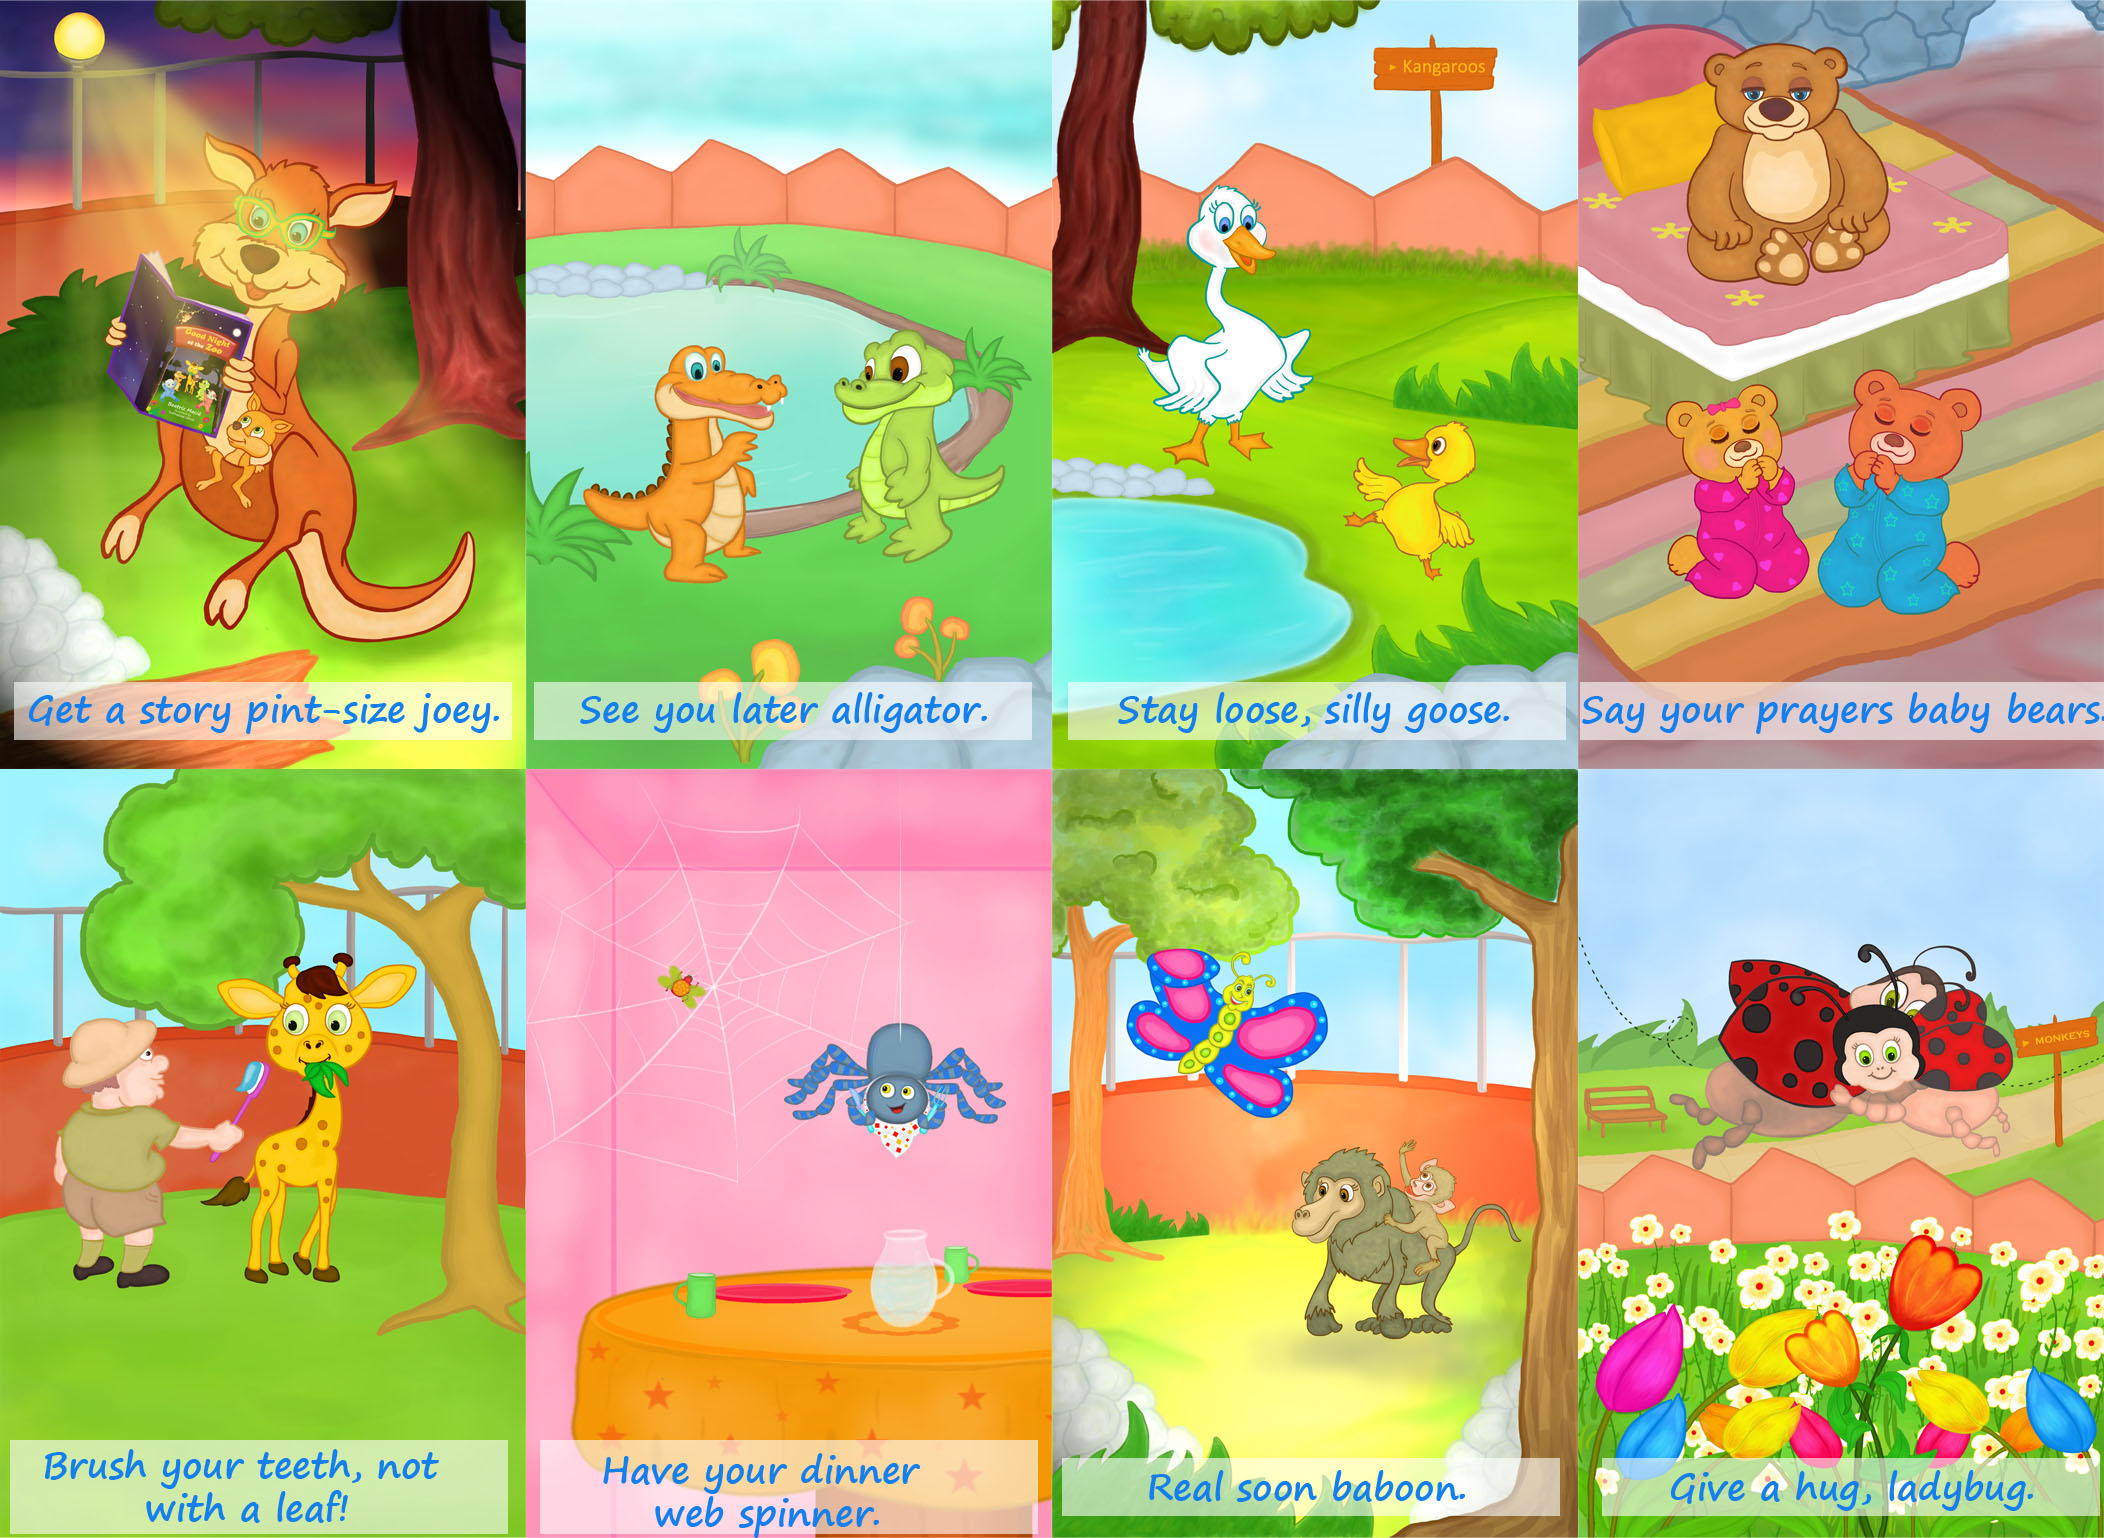 create a FULL COLORED single page CHILDREN BOOK ILLUSTRATION